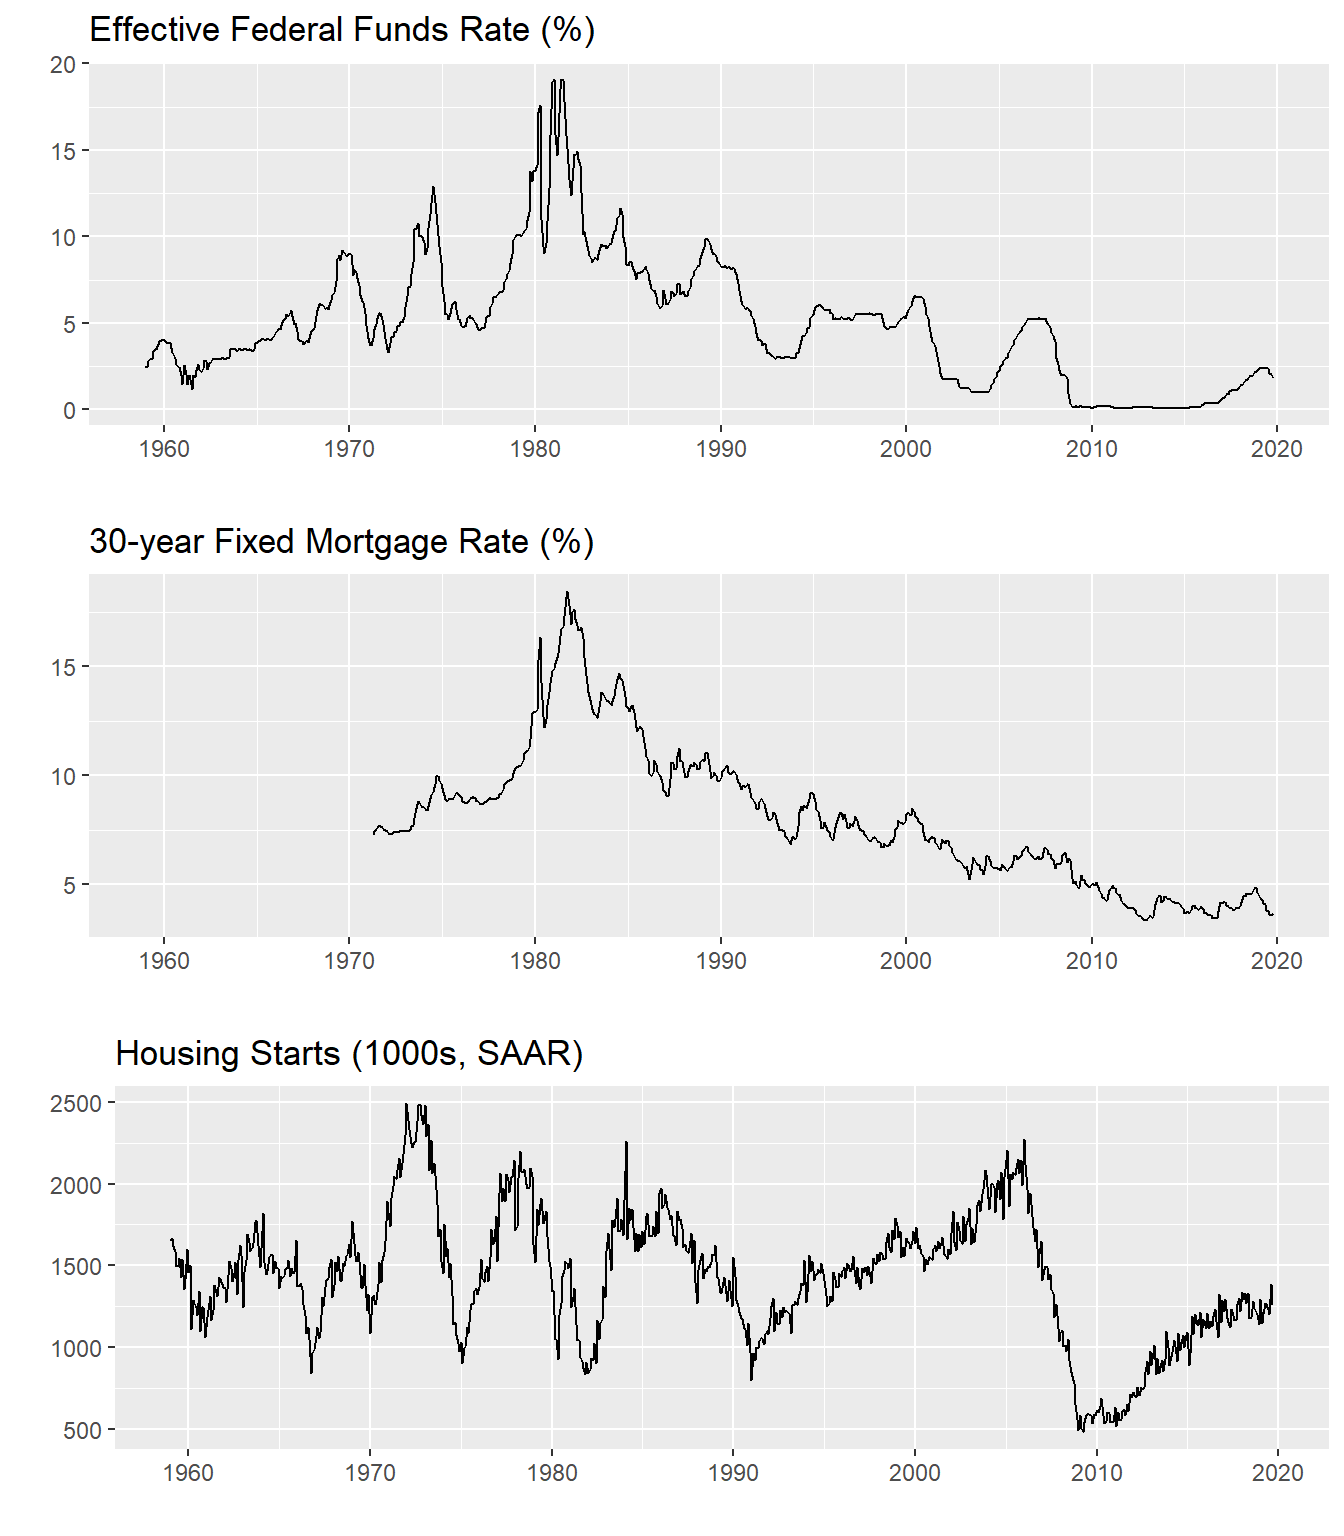 Trends in fed funds rate, mortgage rate, housing starts